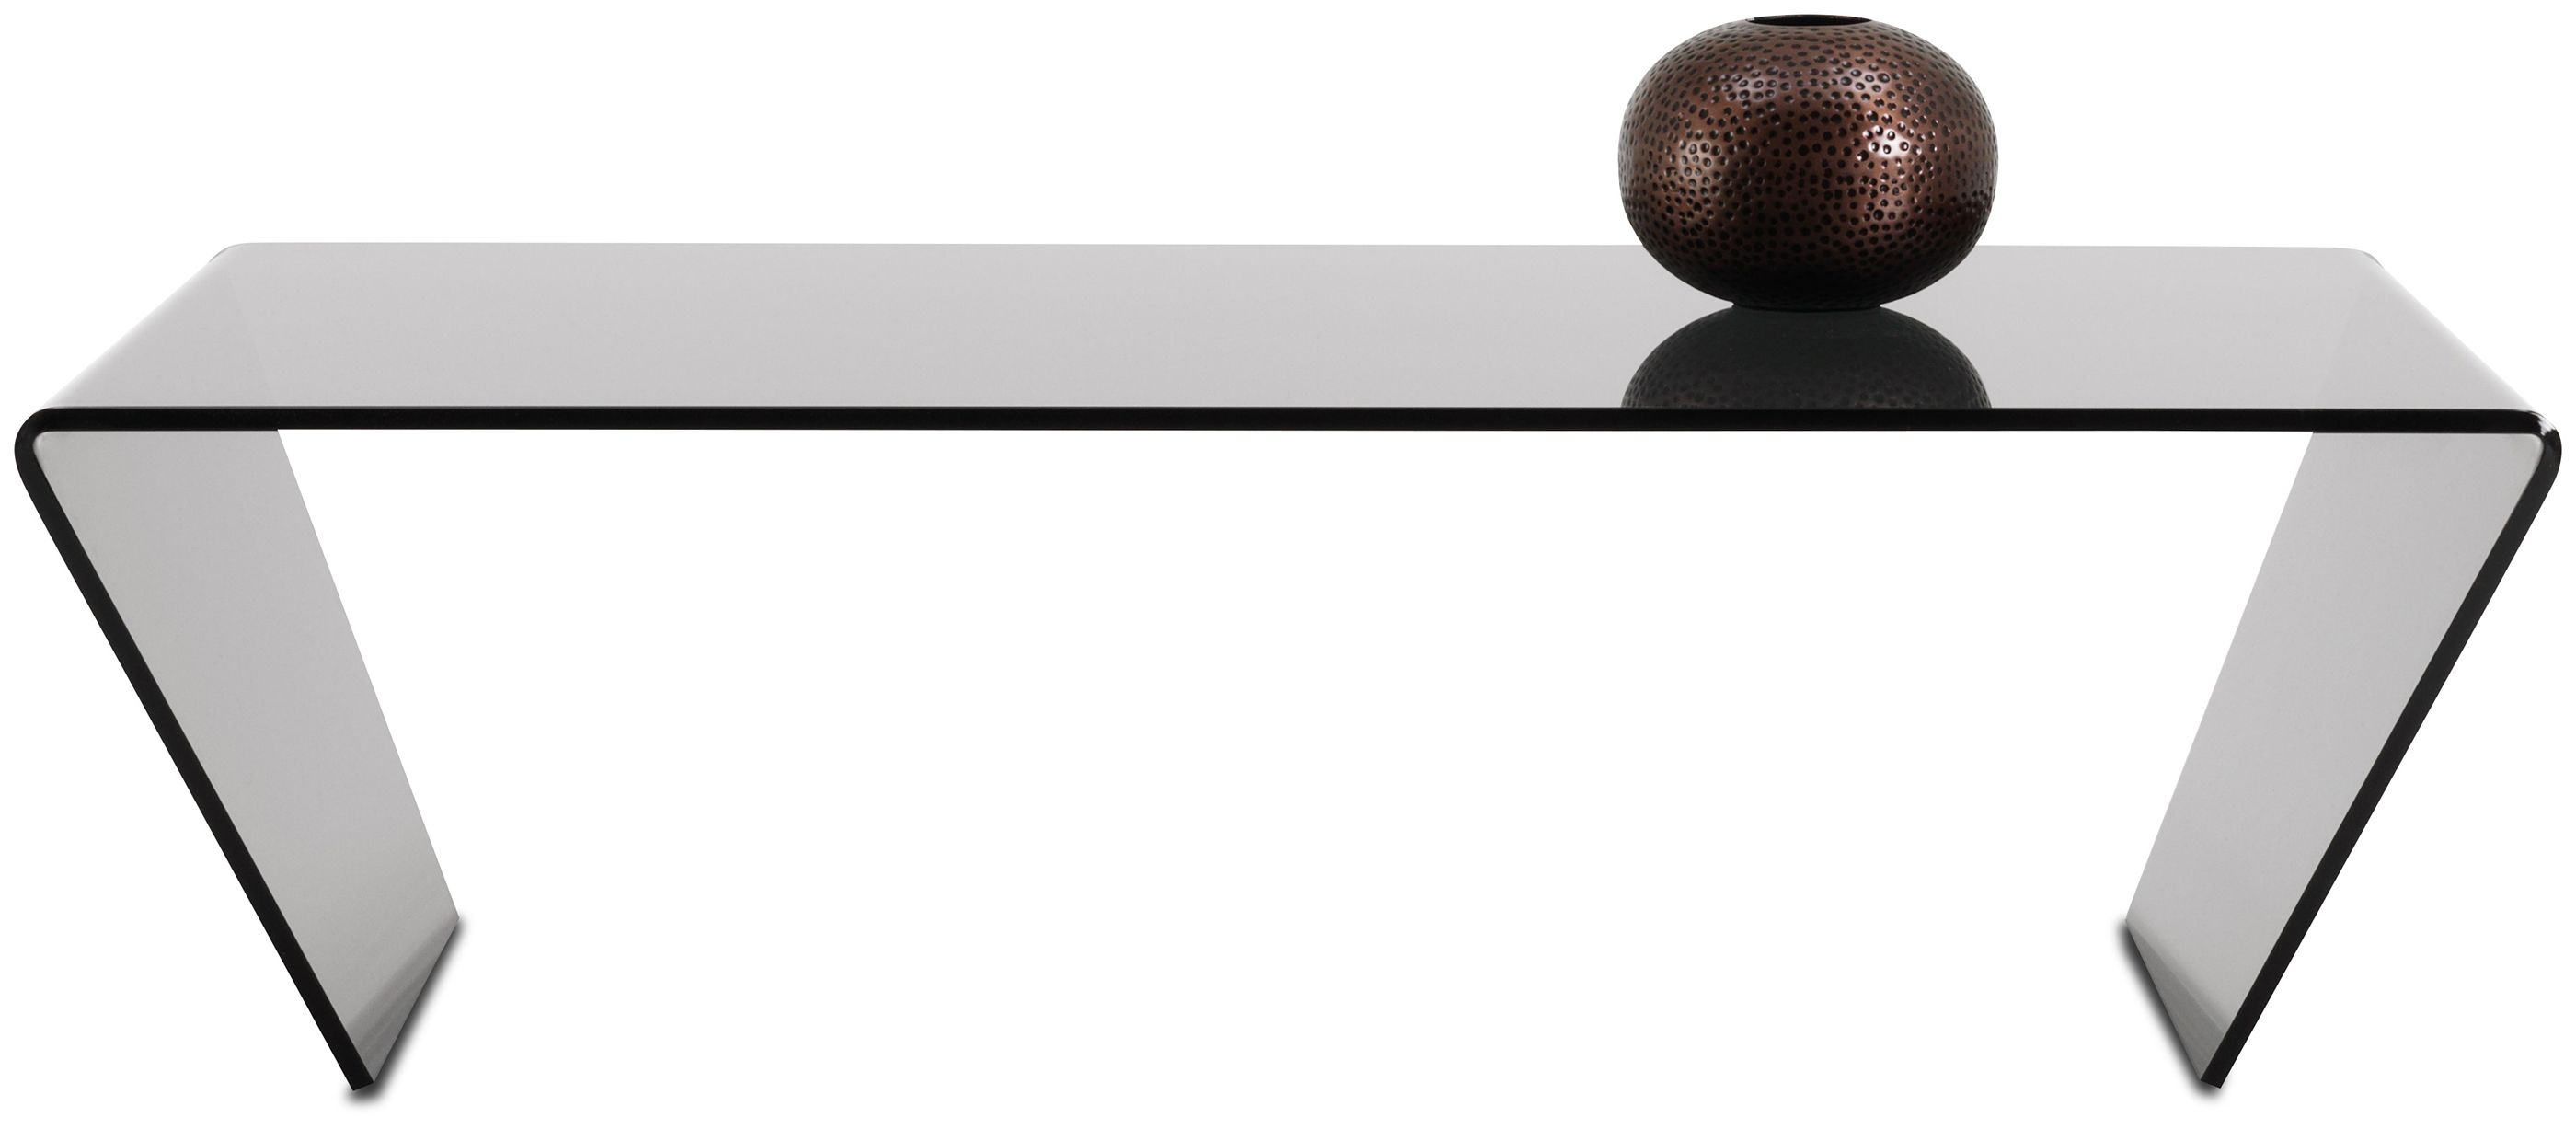 Adria coffee table available in different colors As shown smoke